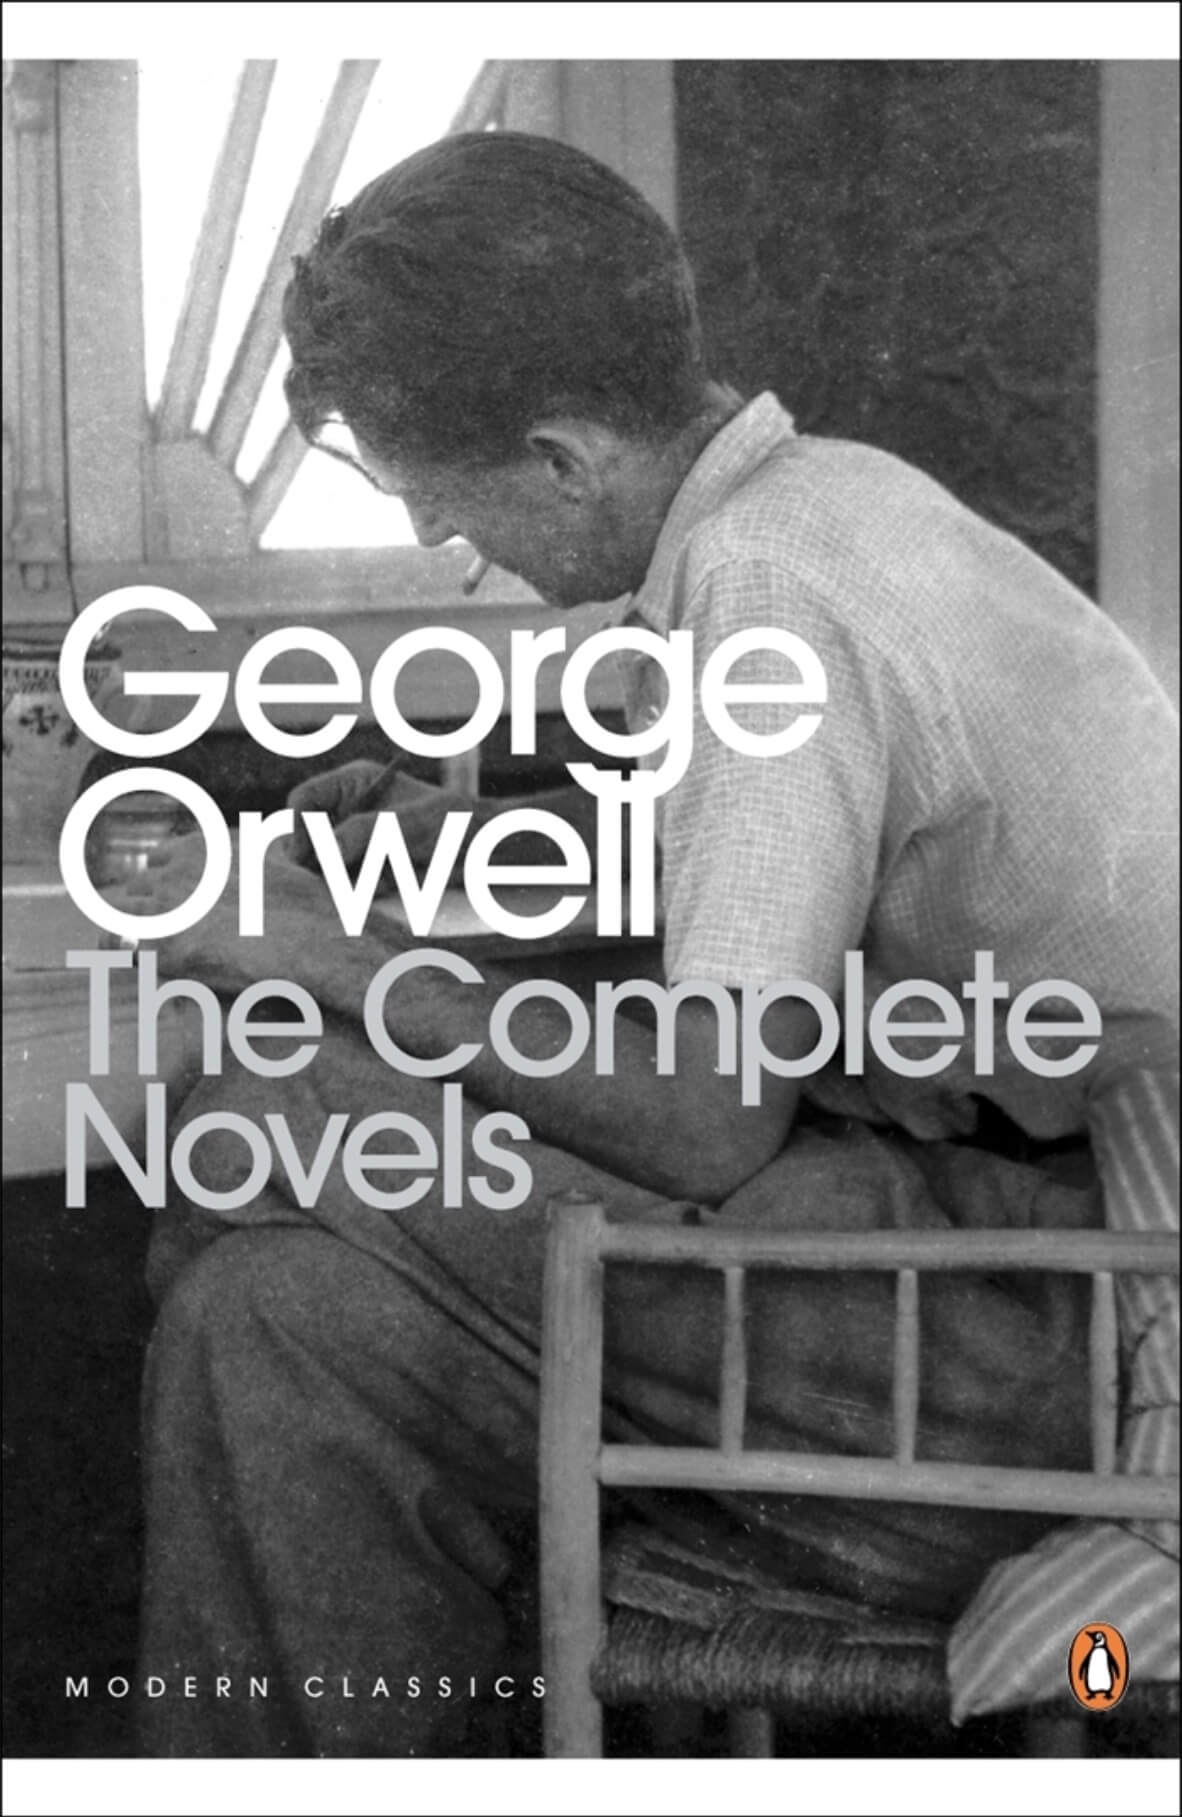 The-Complete-Novels-of-George-Orwell